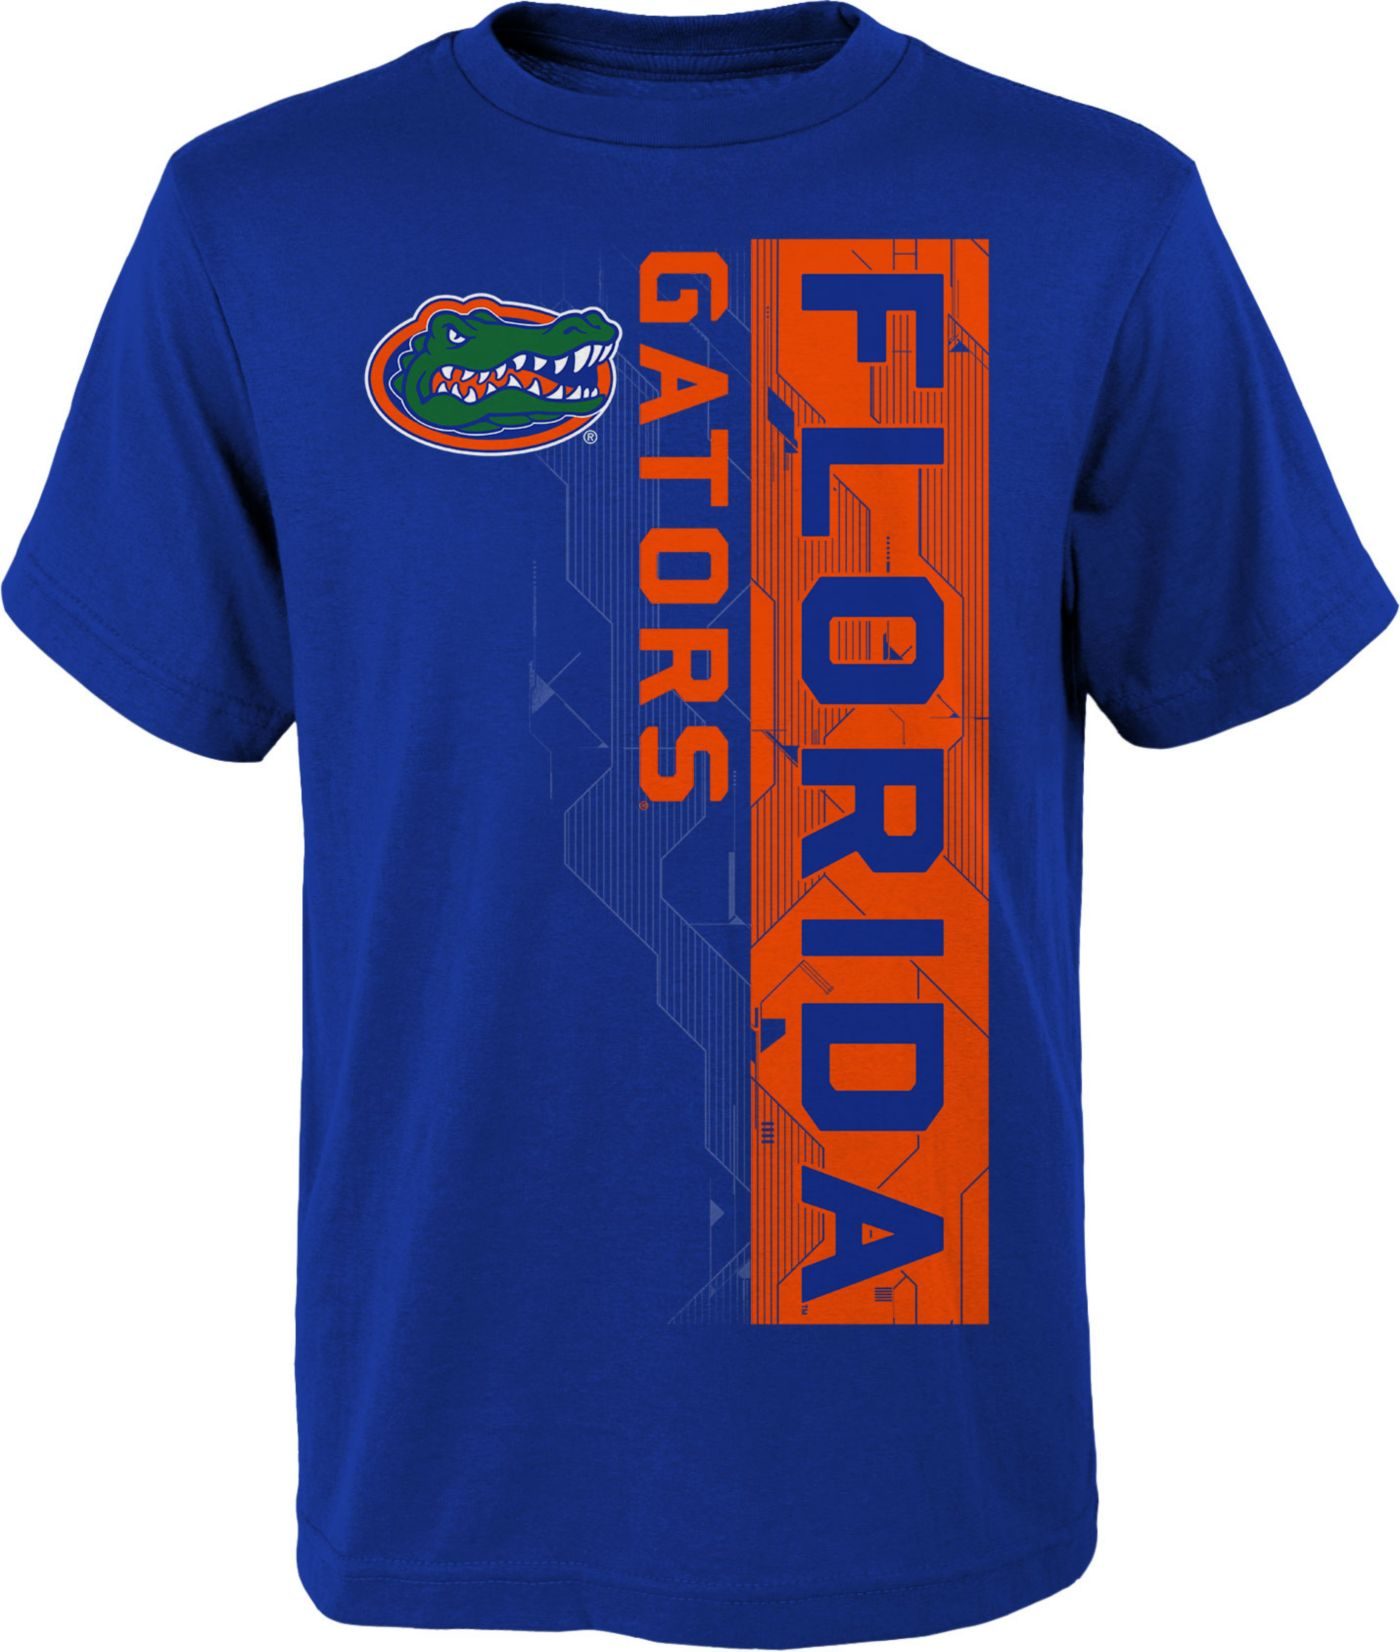 Gen2 Boys' Florida Gators Blue Challenger T-Shirt